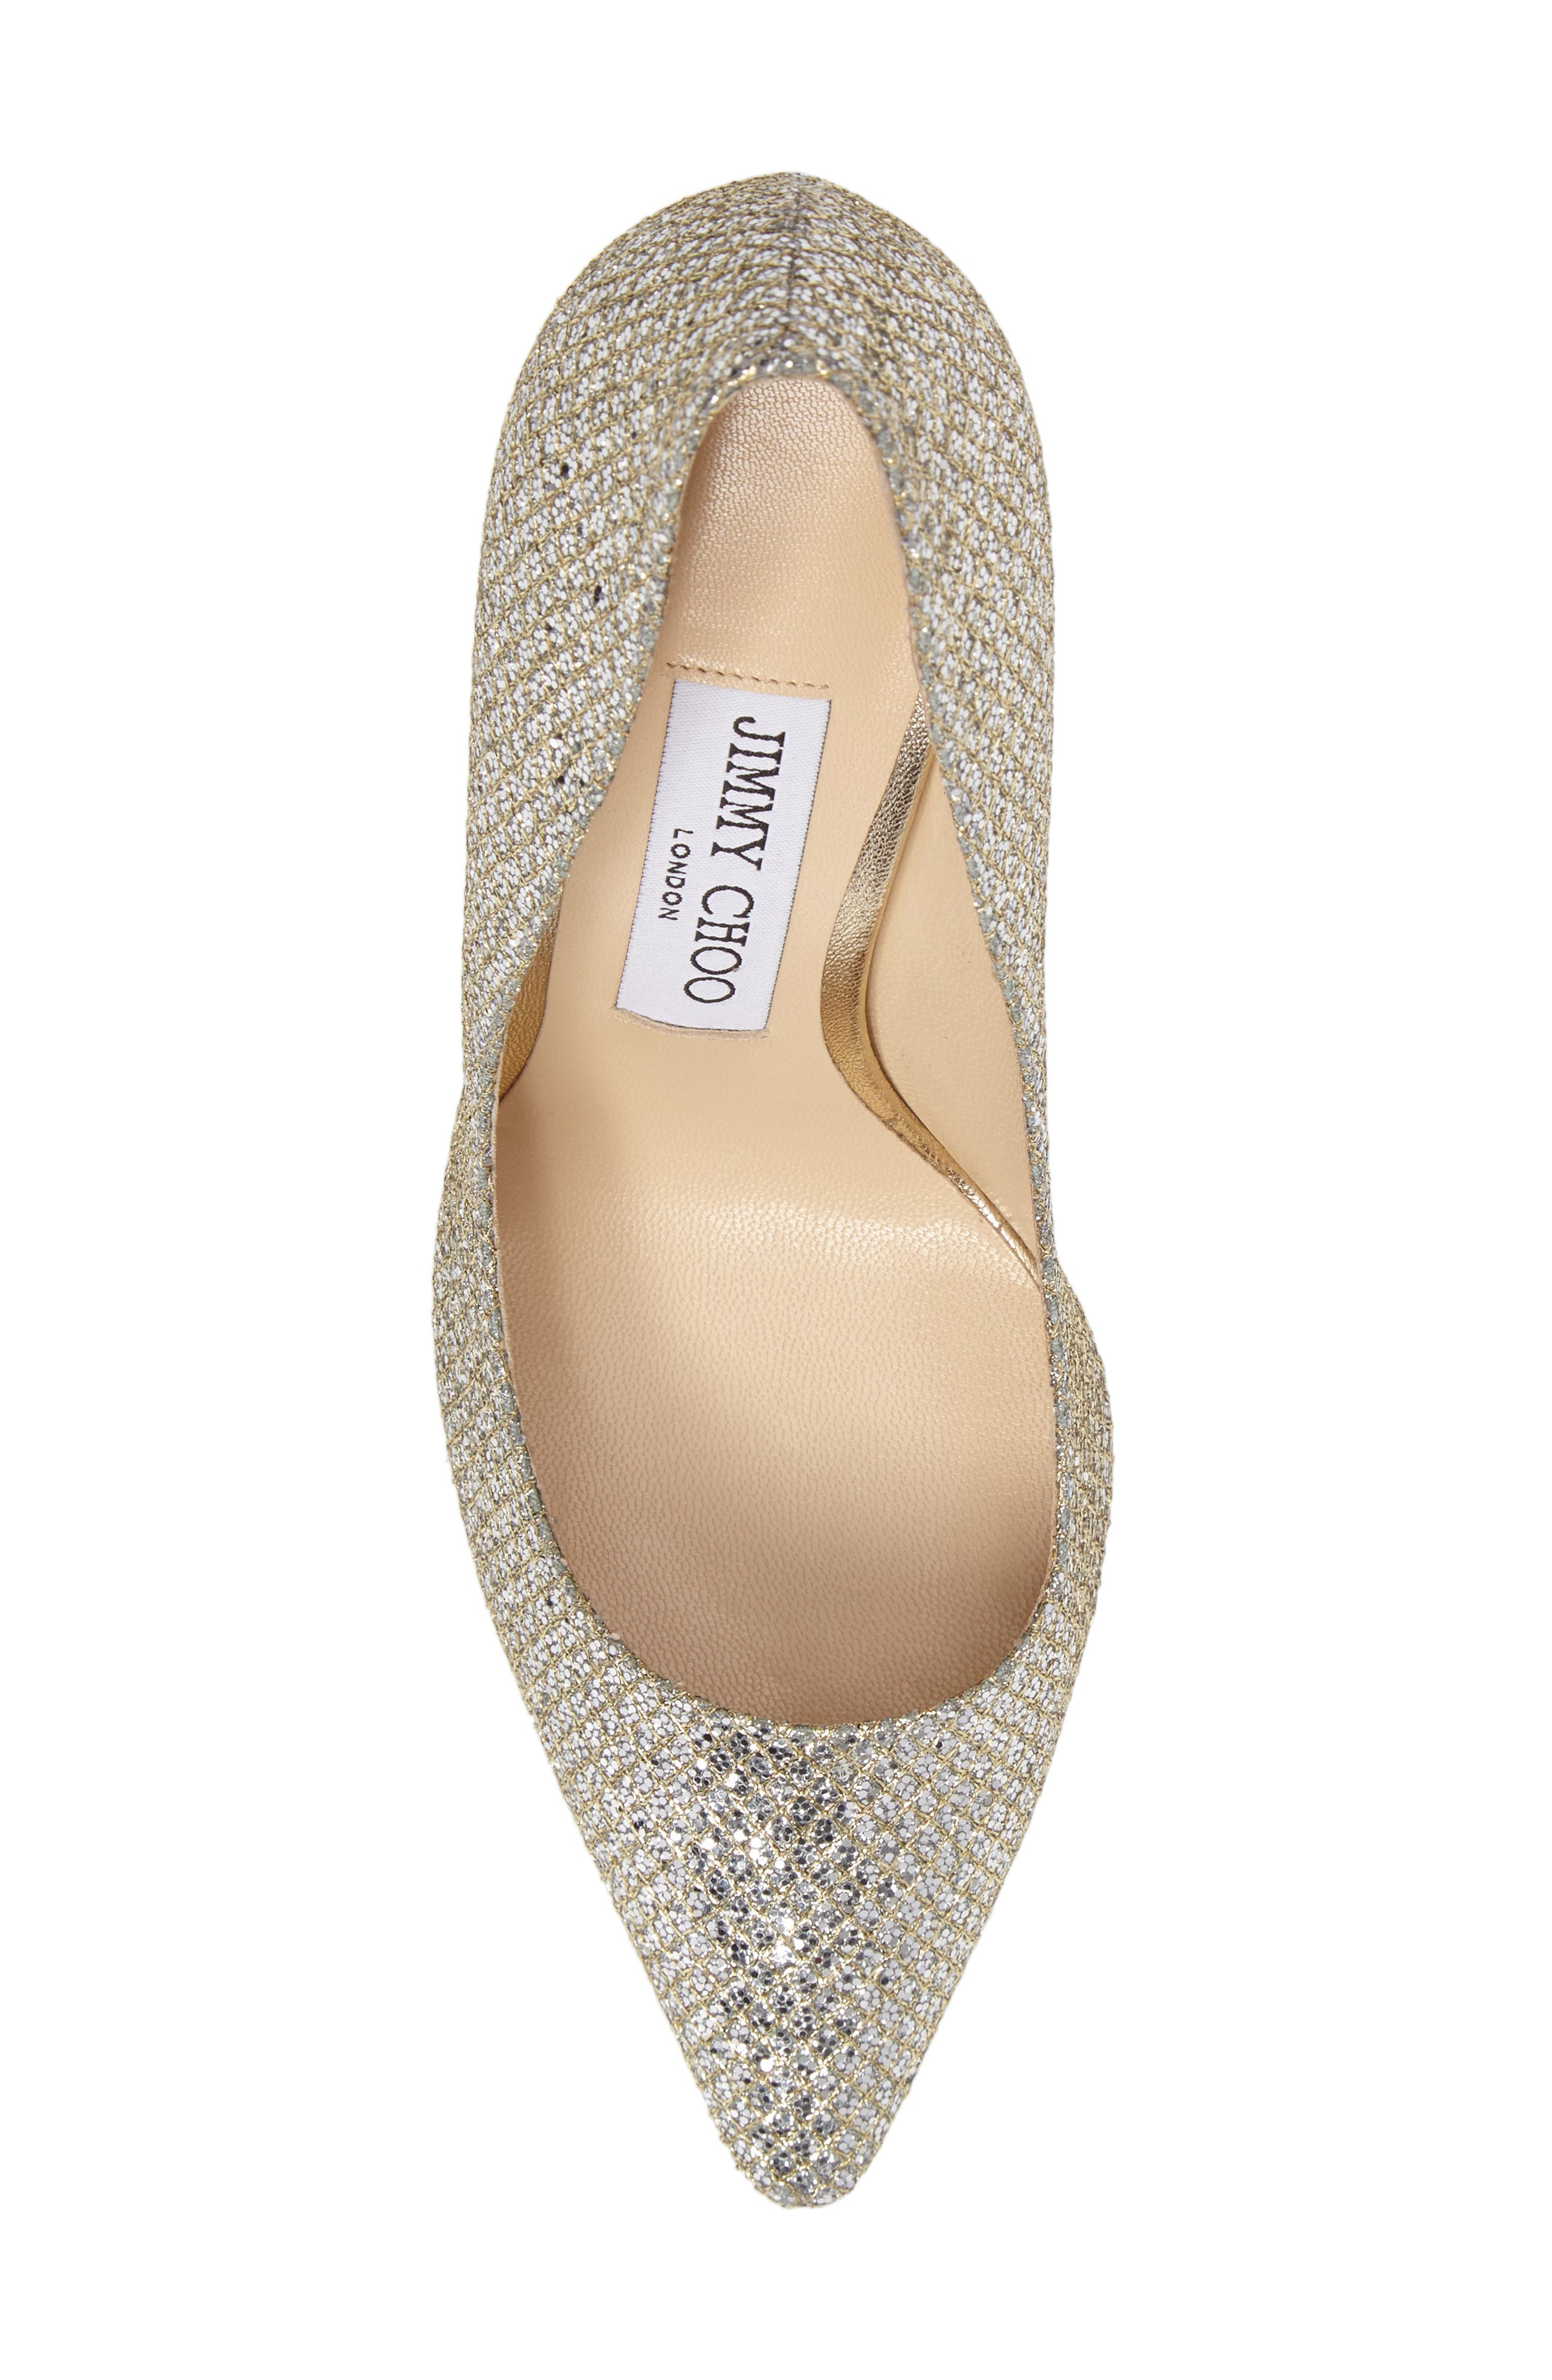 Romy Pointy Toe Pump,                             Alternate thumbnail 5, color,                             CHAMPAGNE